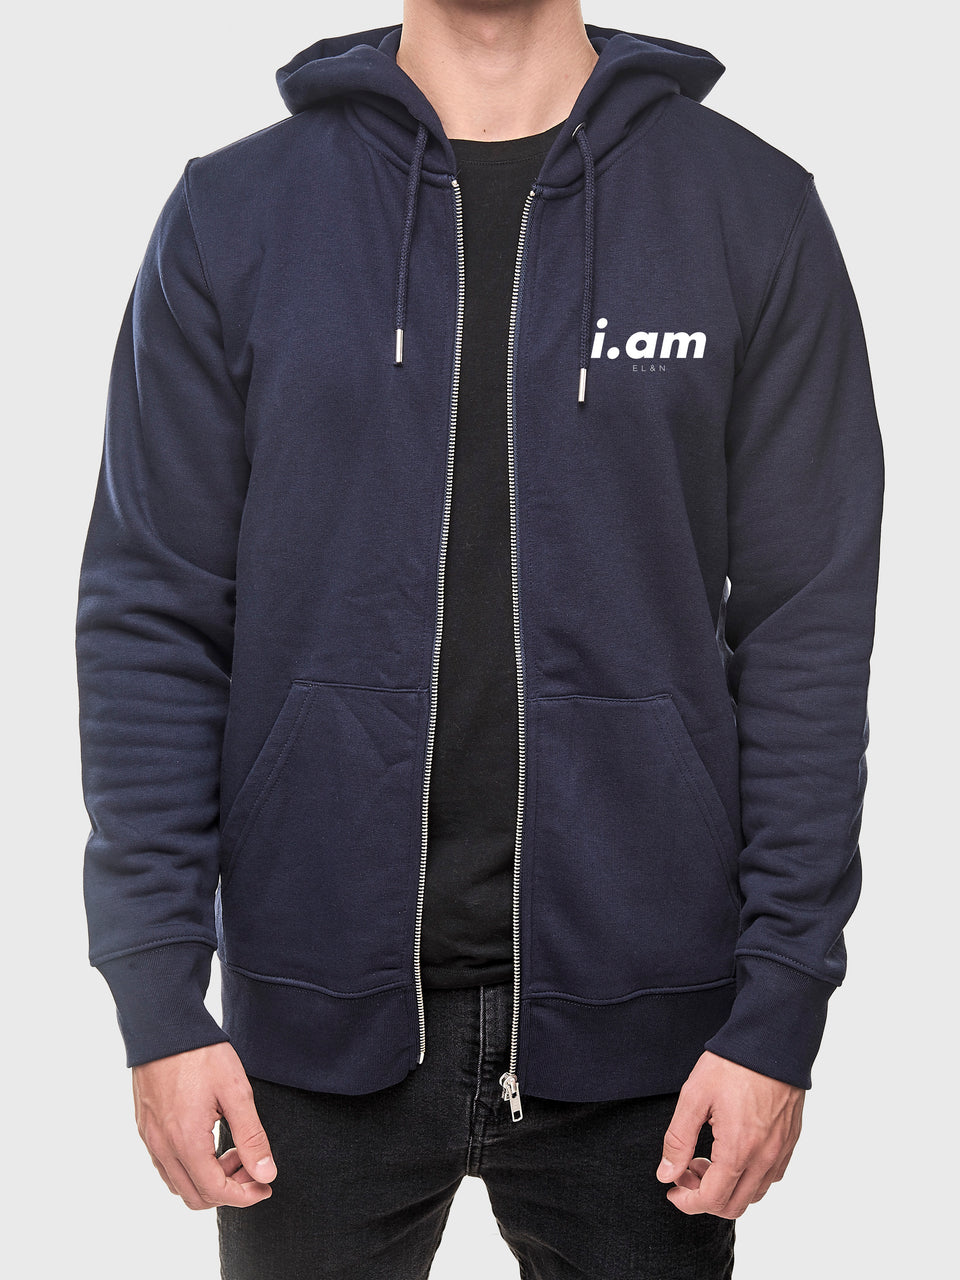 Power - Navy - Unisex zip up hoodie